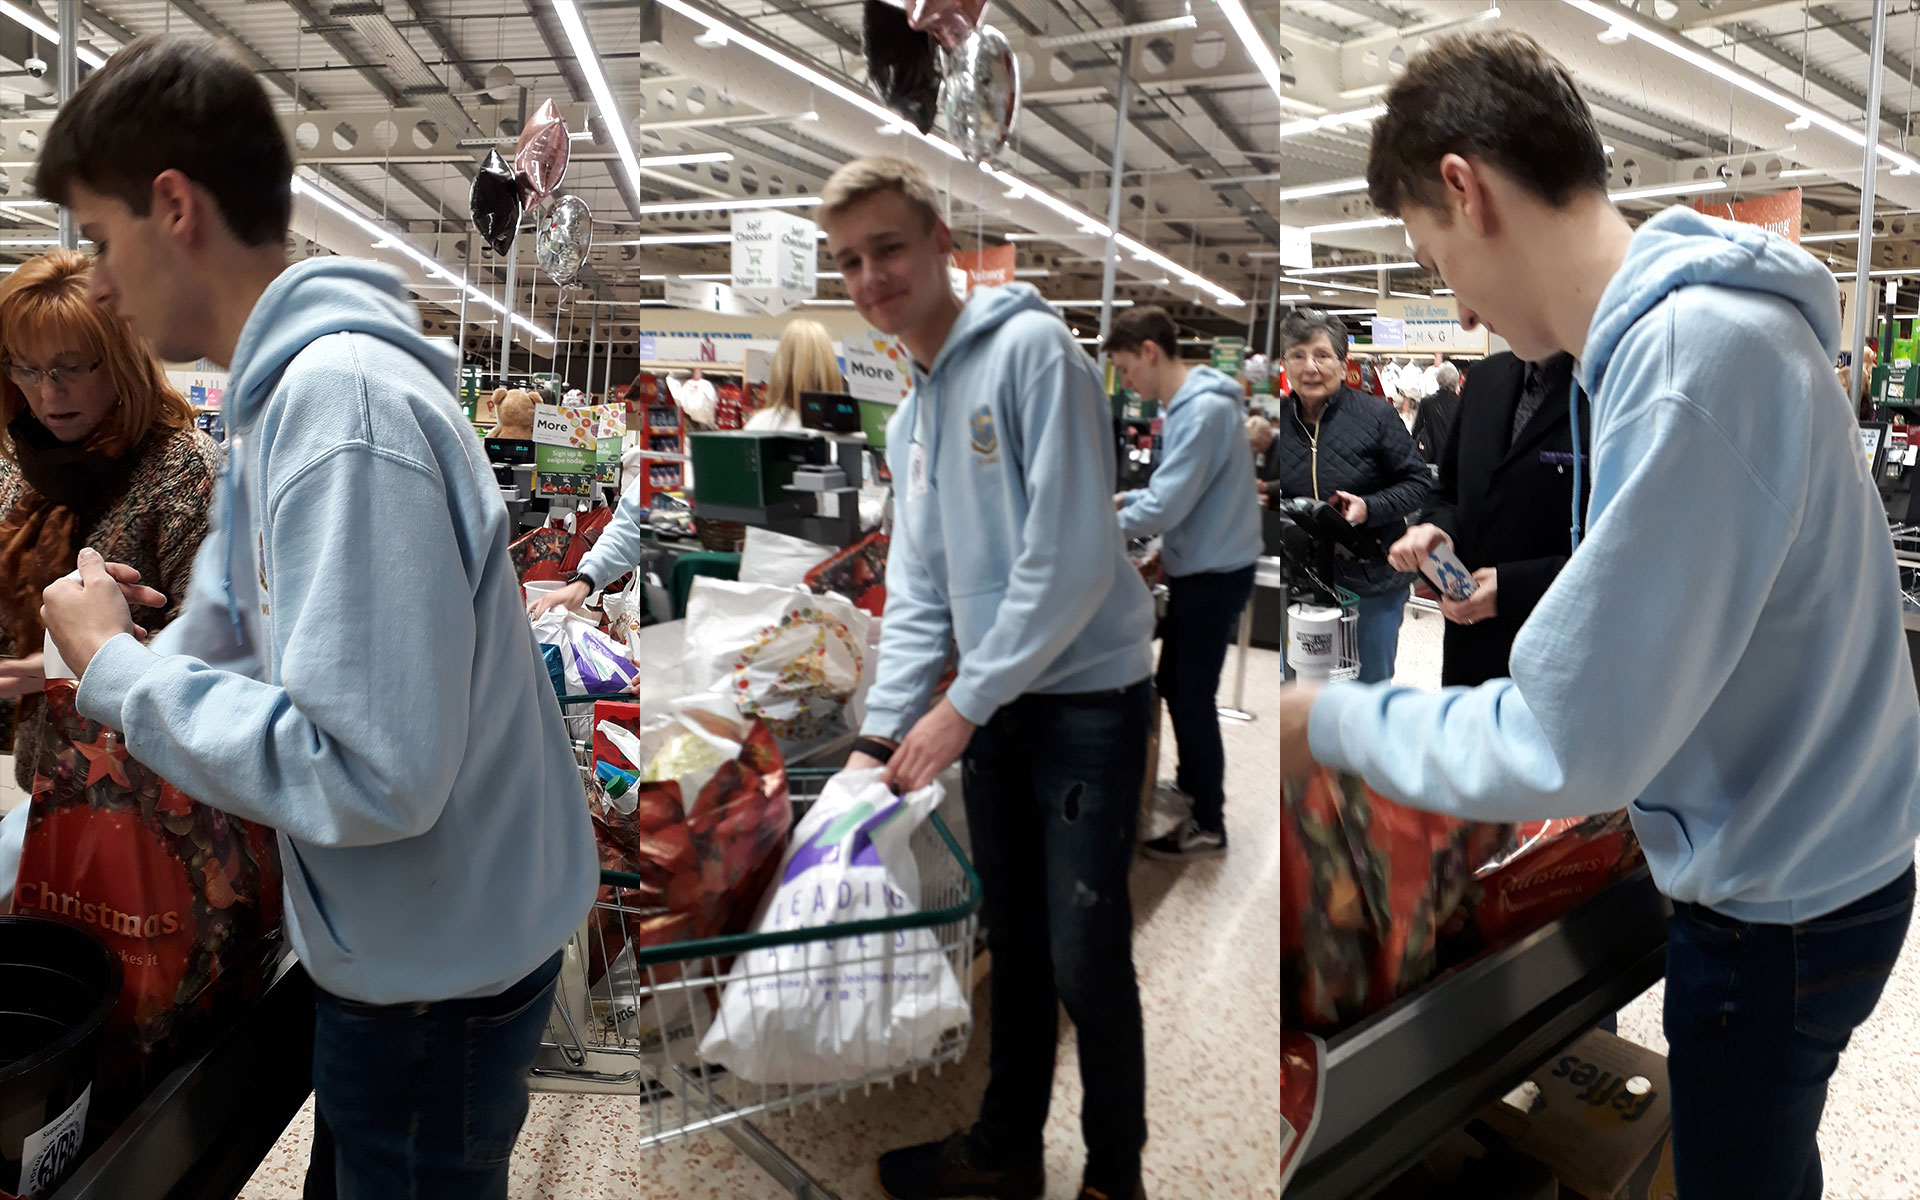 Bag packing at Morrison's